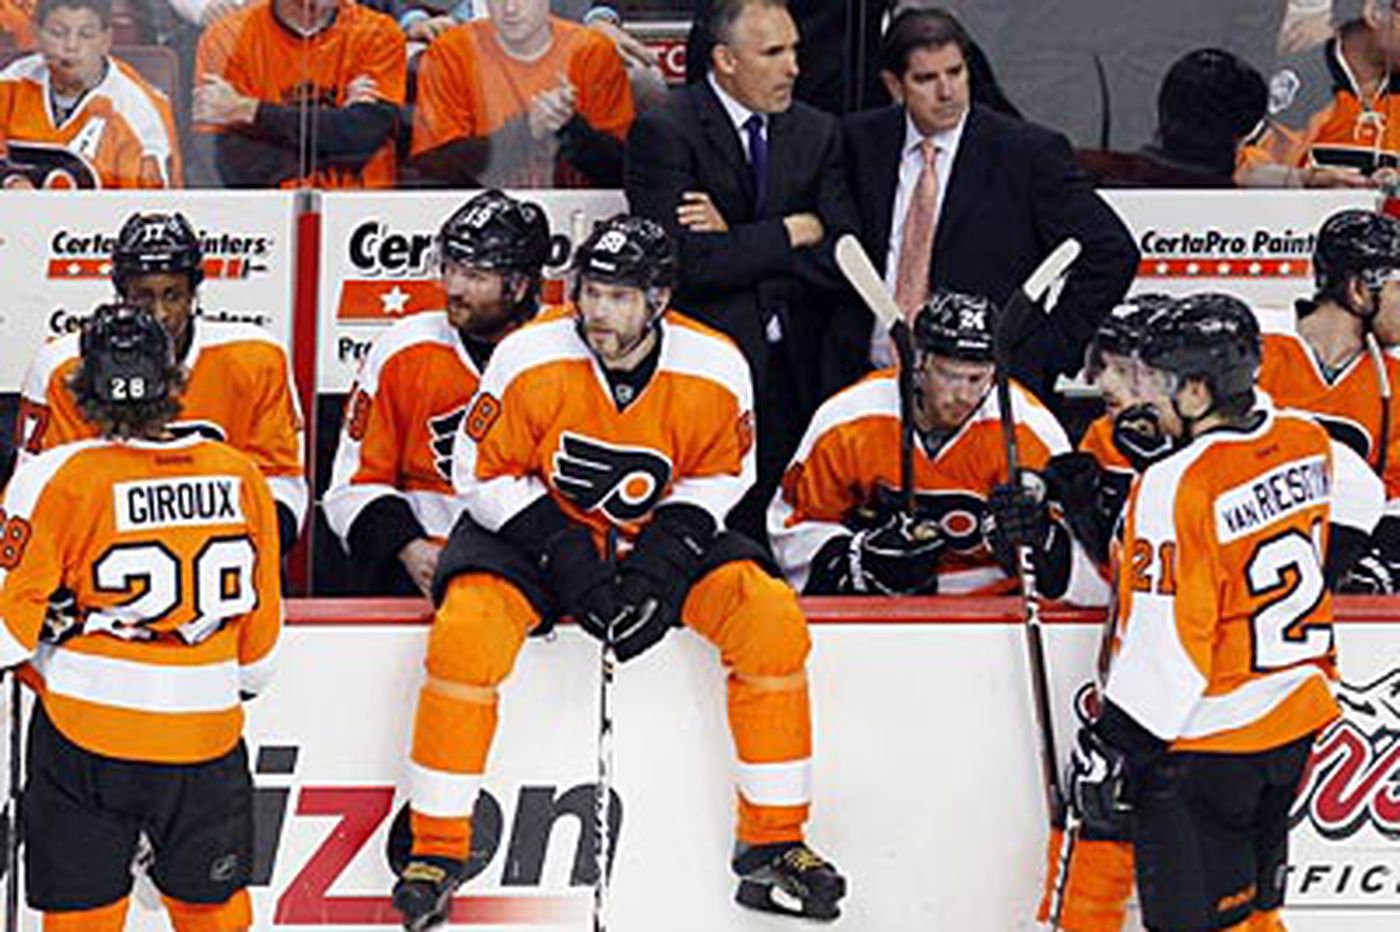 Laviolette hopes a day off will help Flyers refocus